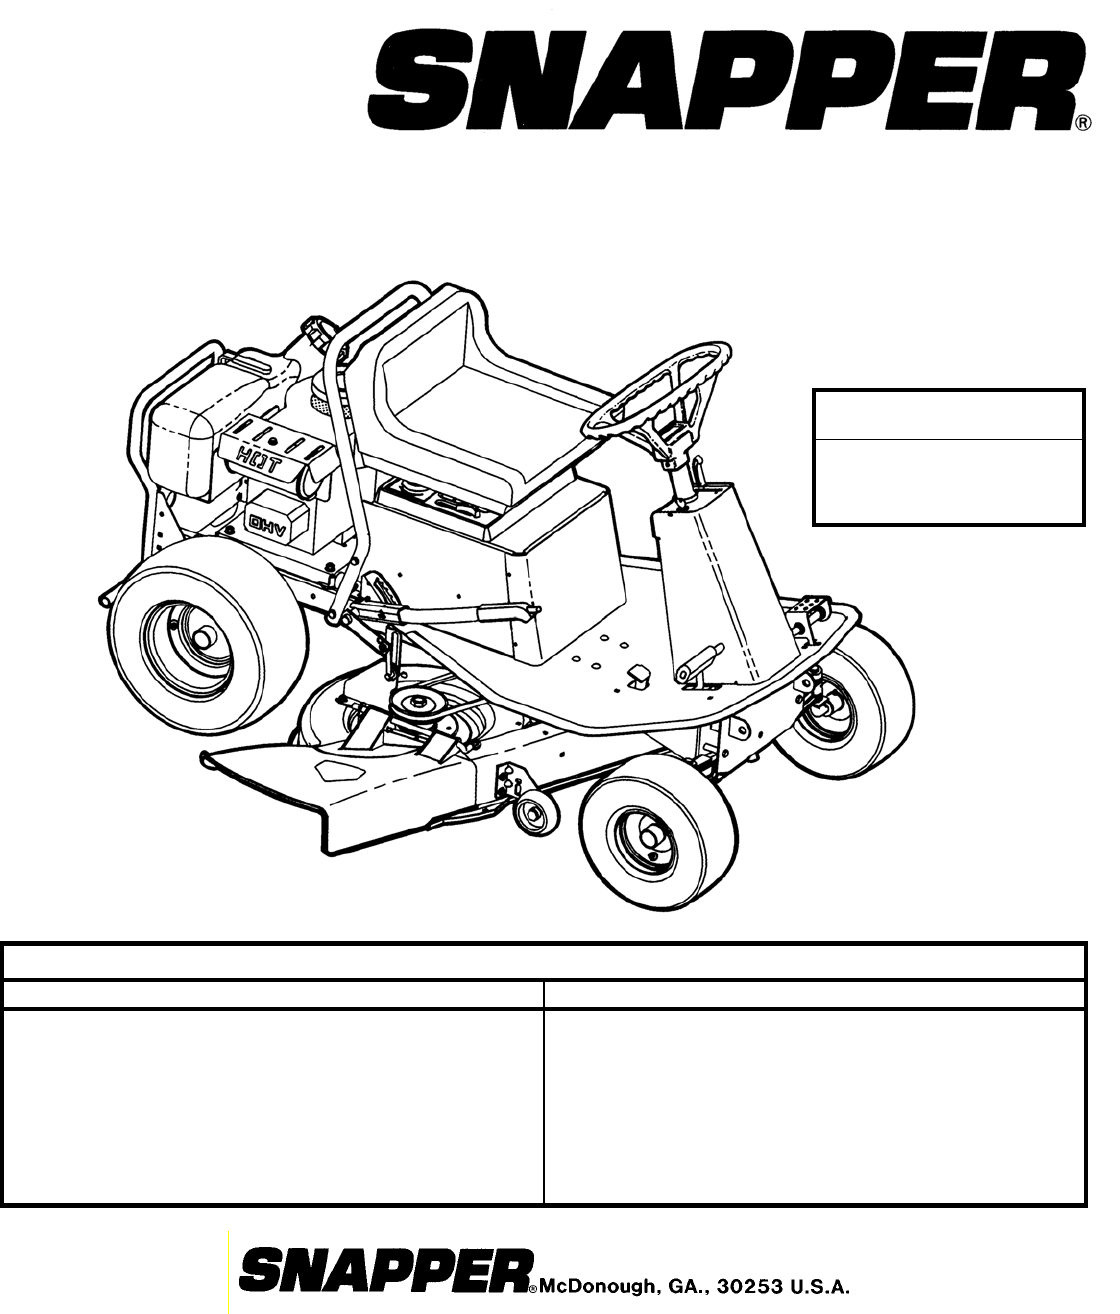 snapper lawn mower 381450hbve user guide manualsonline com parts manual for rear engine riding mower